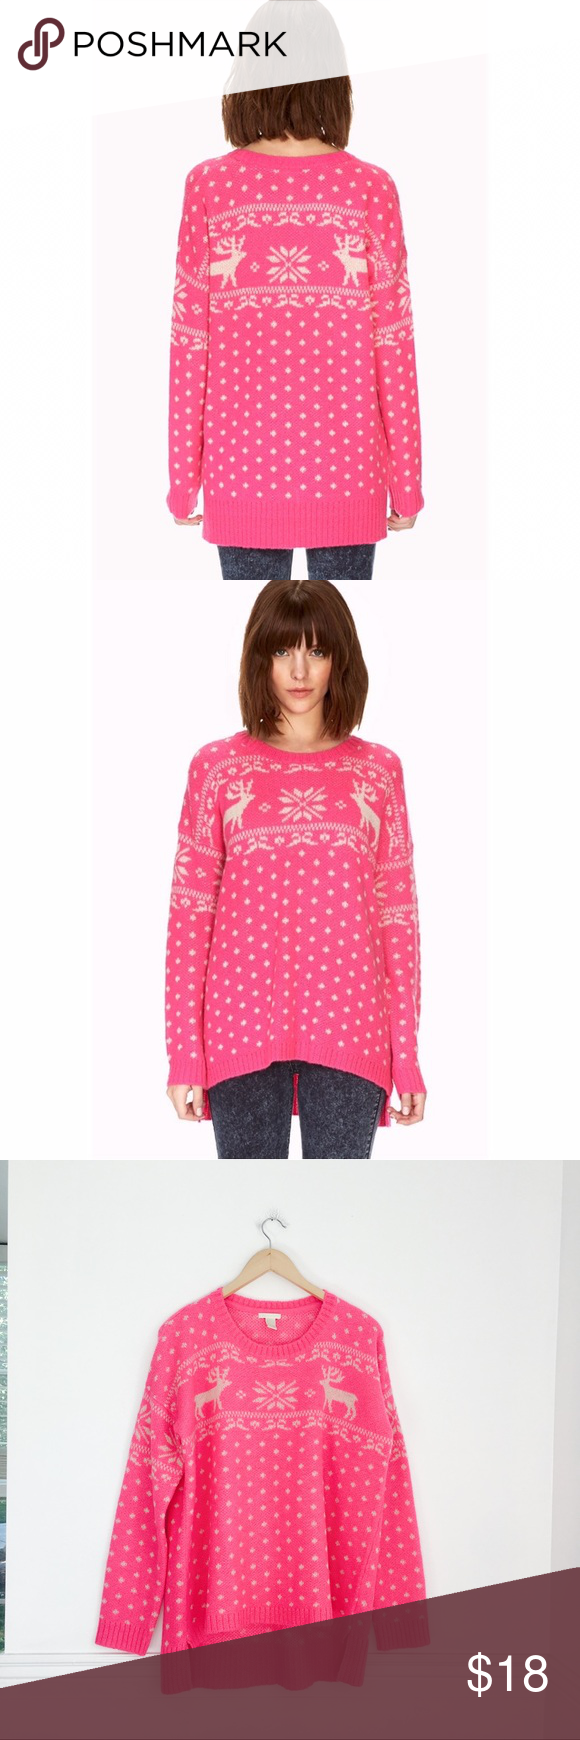 Holiday Sweater | Ugliest christmas sweaters, Bright pink and ...